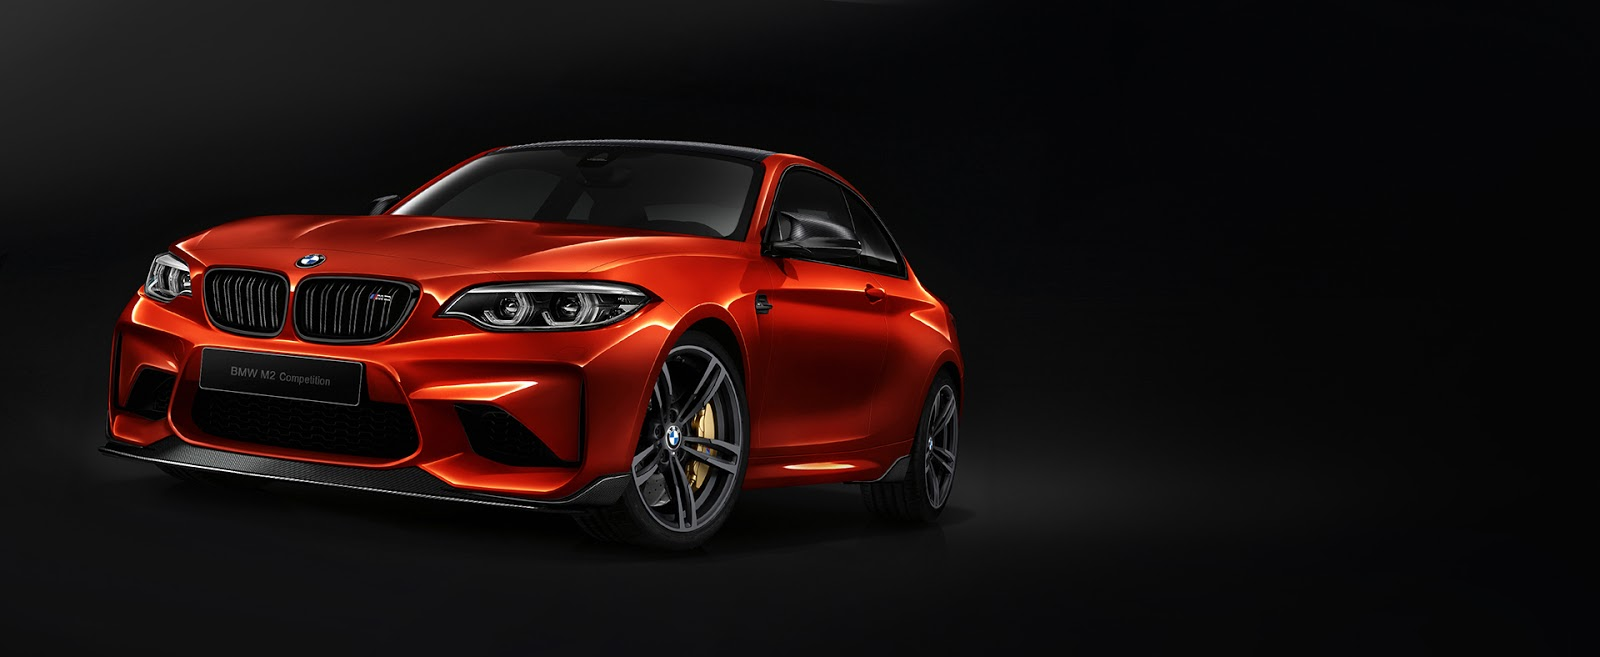 Report: 2018 BMW M2 Competition Might Arrive This April, Prior to Beijing Motor Show   BMWCoop